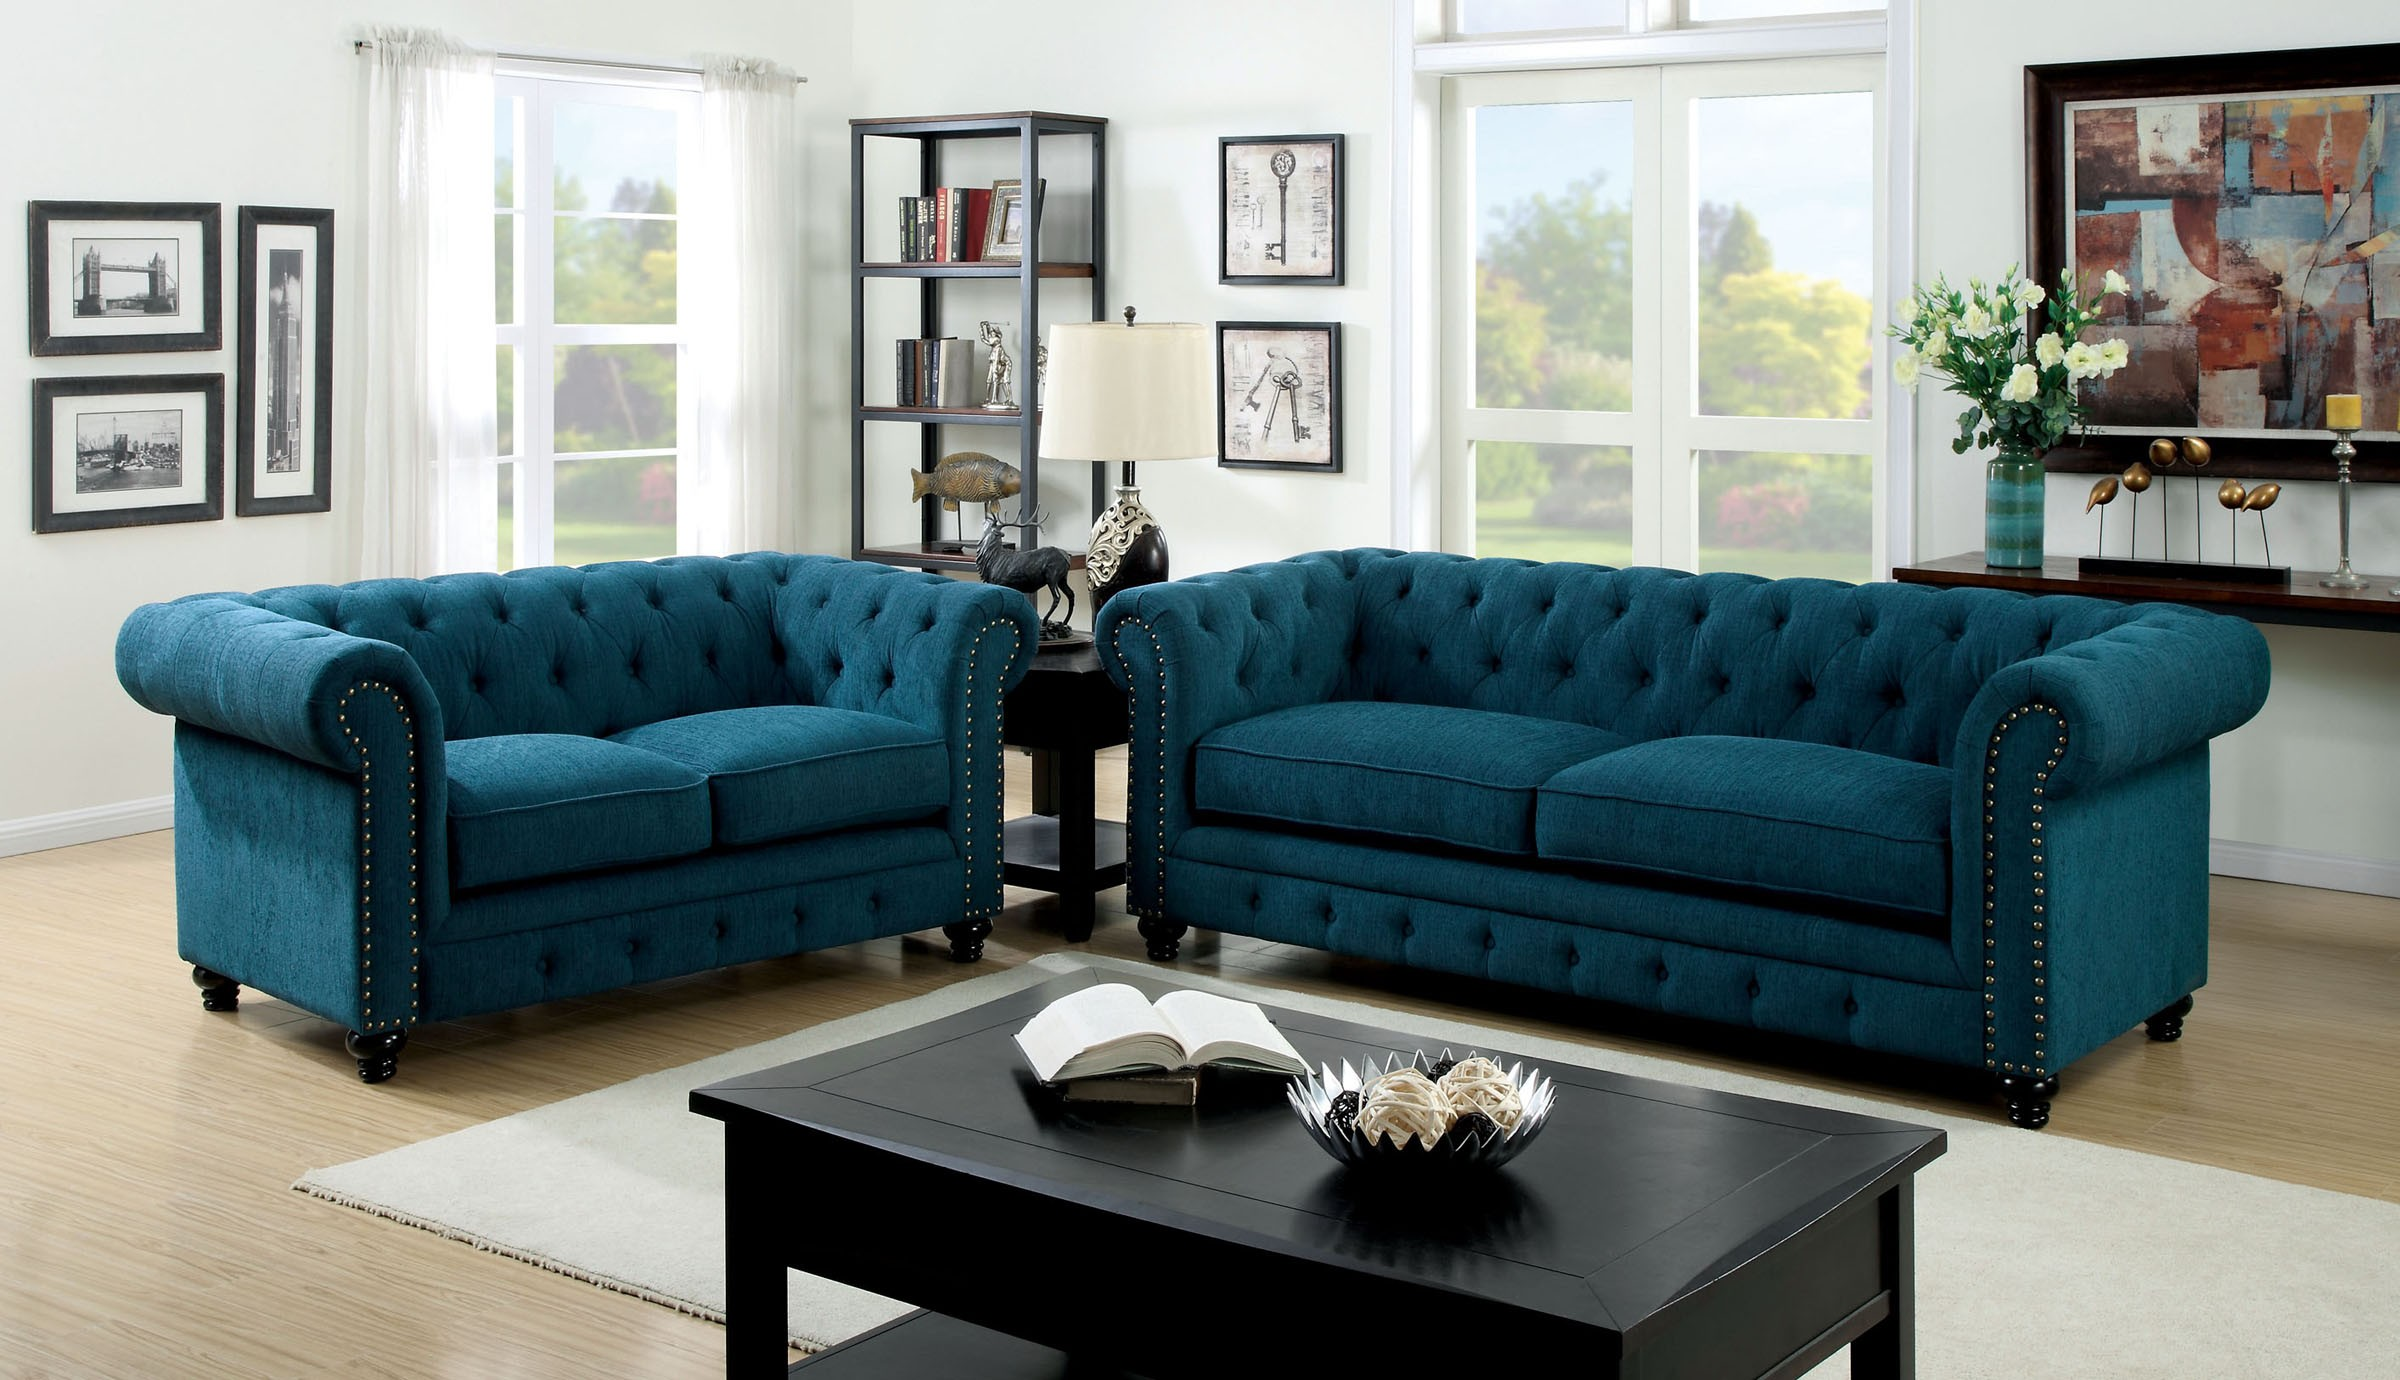 Peachy Stanford Dark Teal Fabric Living Room Set Download Free Architecture Designs Scobabritishbridgeorg